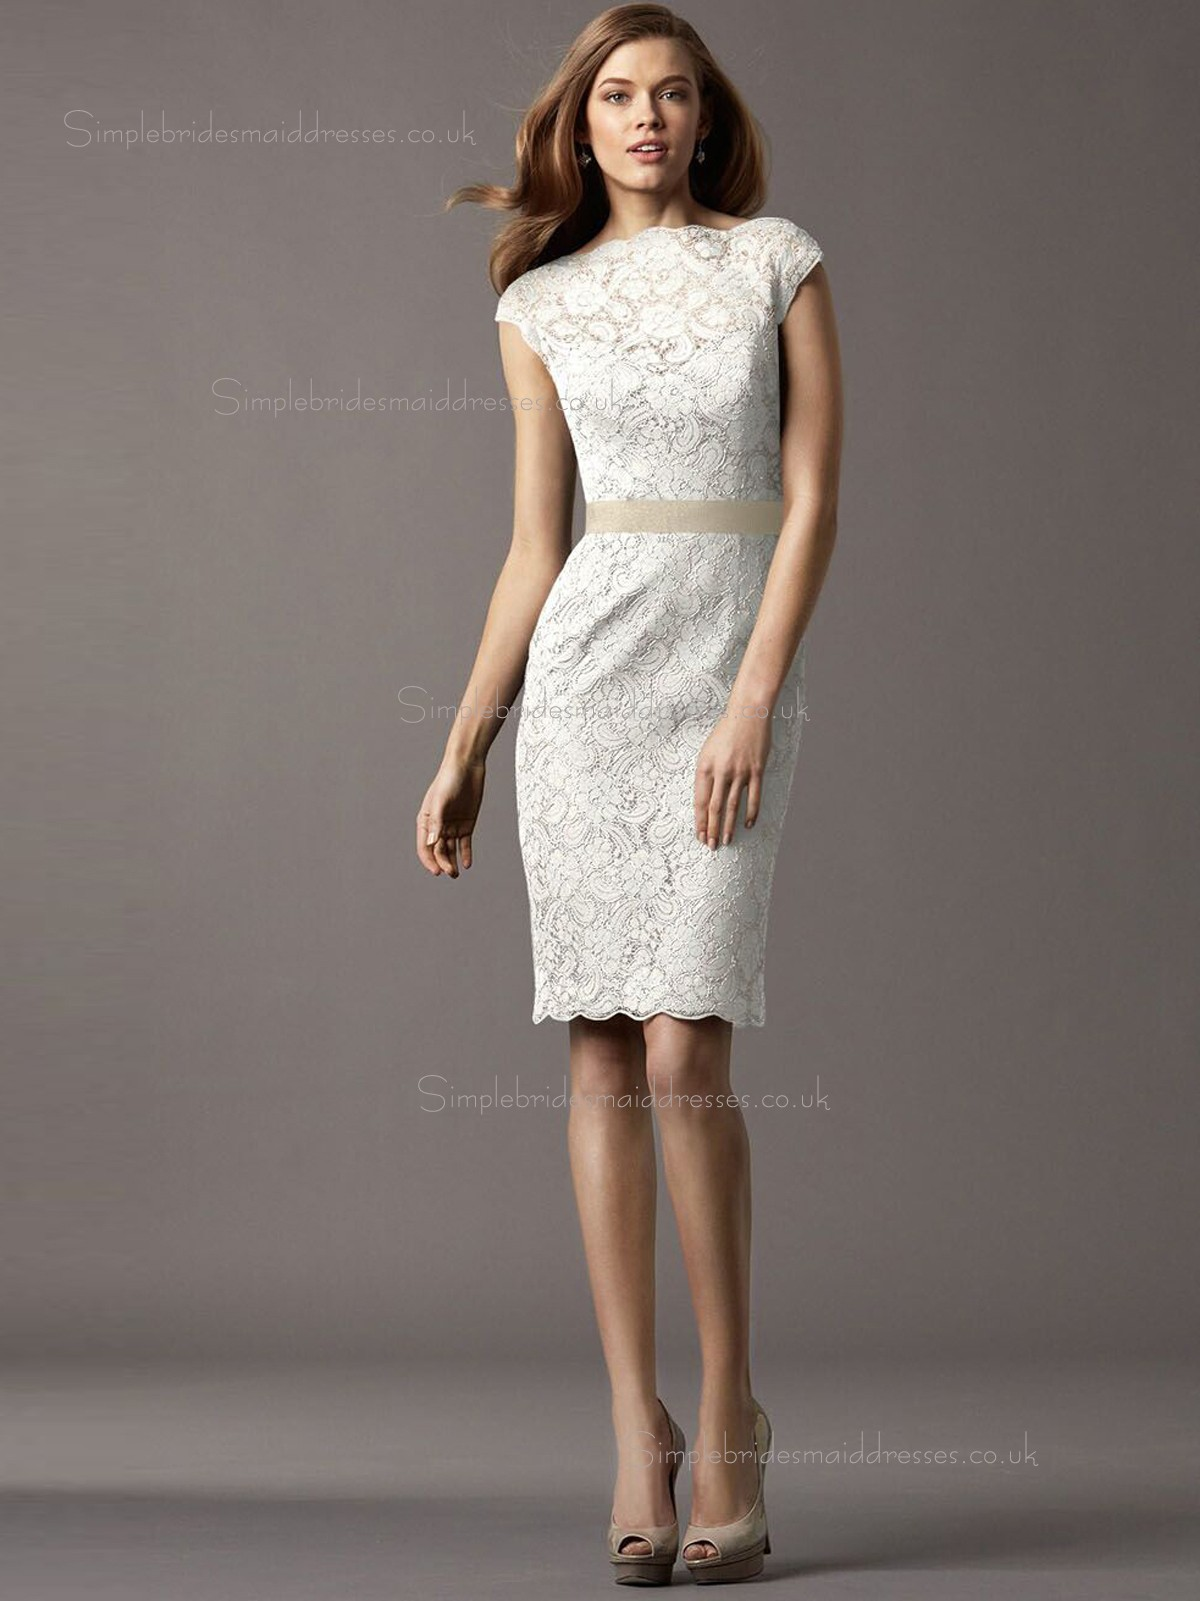 Buy Uk Ivory Column  Sheath Lace Bateau Kneelength. Pink Wedding Gowns Allure Couture. Simple Wedding Dresses Low Back. Black Bridesmaid Dresses Under 150. Boho Garden Wedding Dresses. Summer Wedding Dress Clearance. Wedding Dresses With Blue Lace. Princess Grace Wedding Dress Knock Off. Cheap Wedding Dresses Knoxville Tn